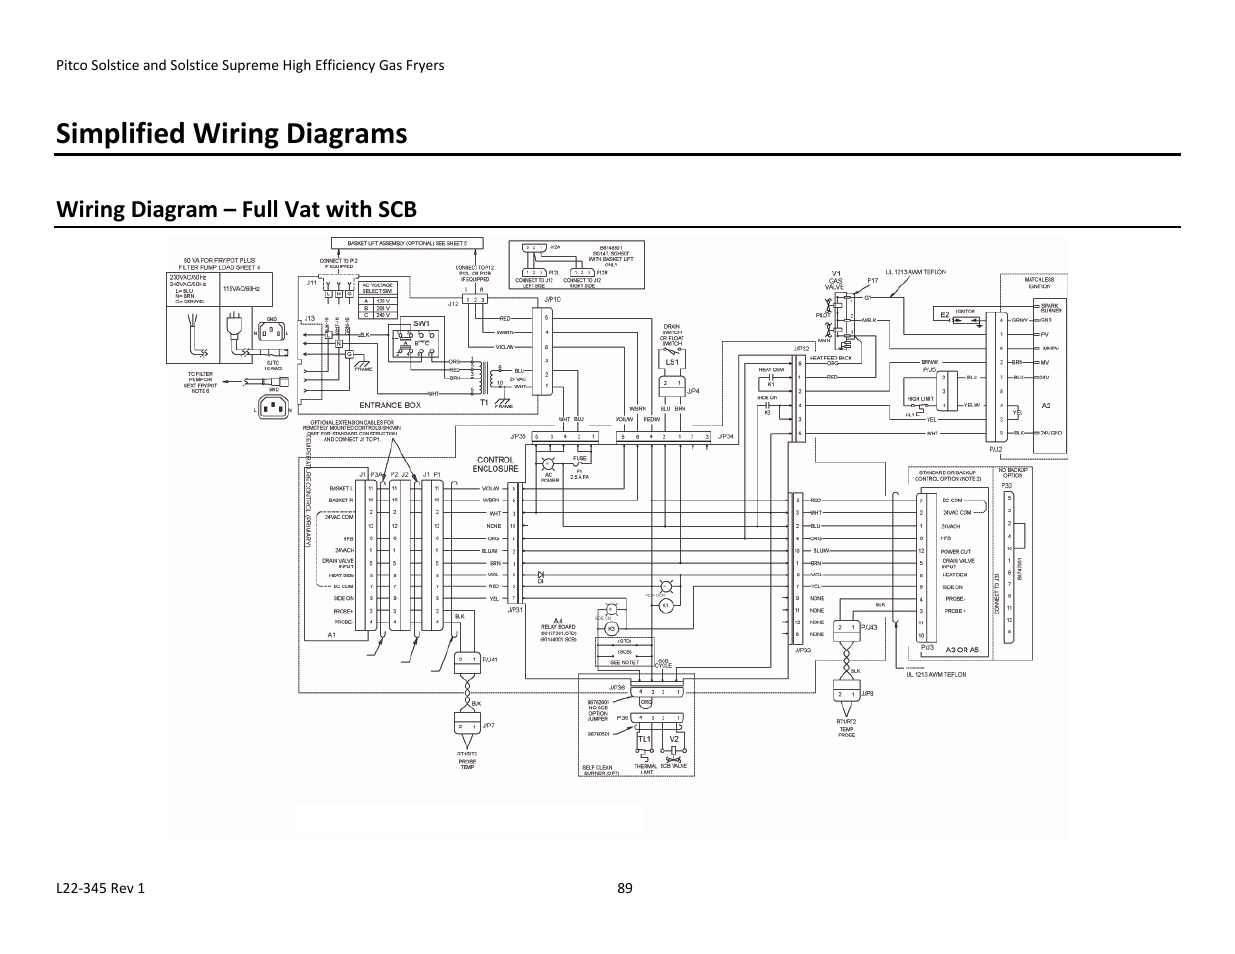 simplified wiring diagrams  wiring diagram  u2013 full vat with